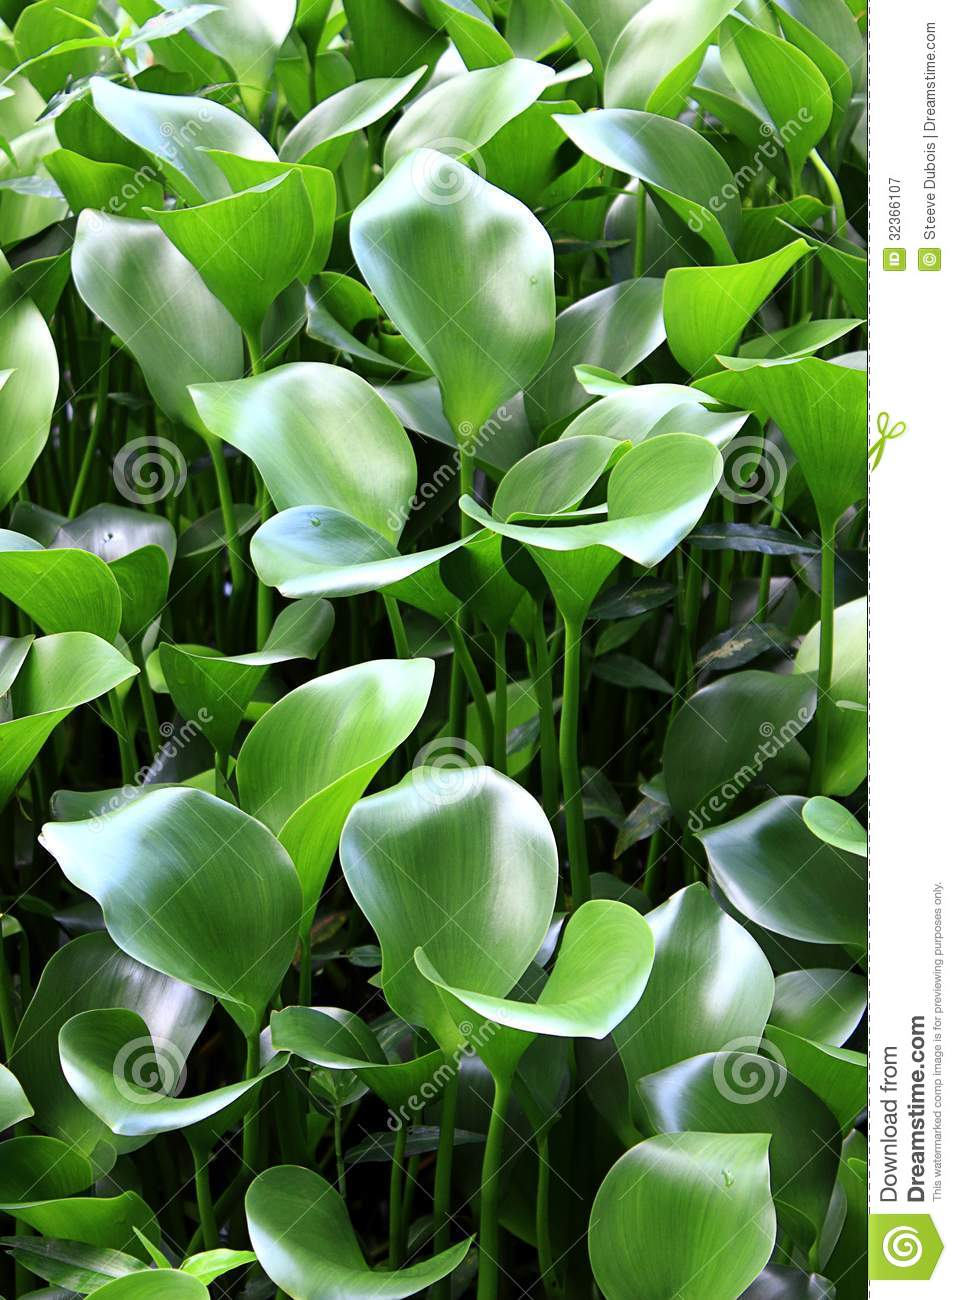 Name Some Water Plants